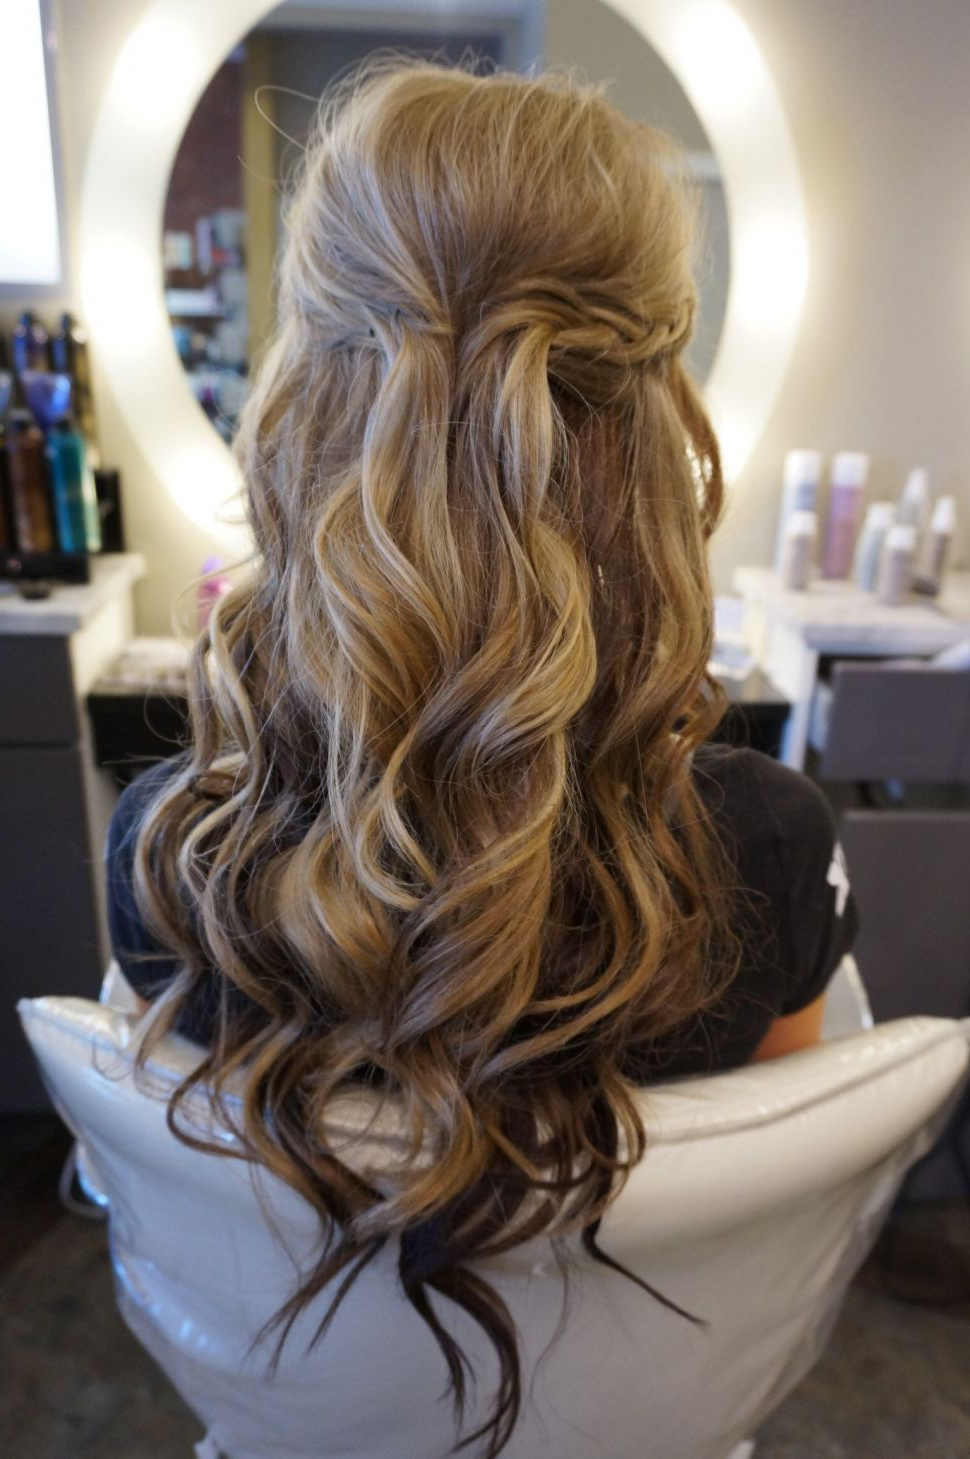 Hairstyles : Curls Half Up Hairstyle Agreeable Long Hair Regarding Famous Curled Half Up Hairstyles (View 5 of 20)